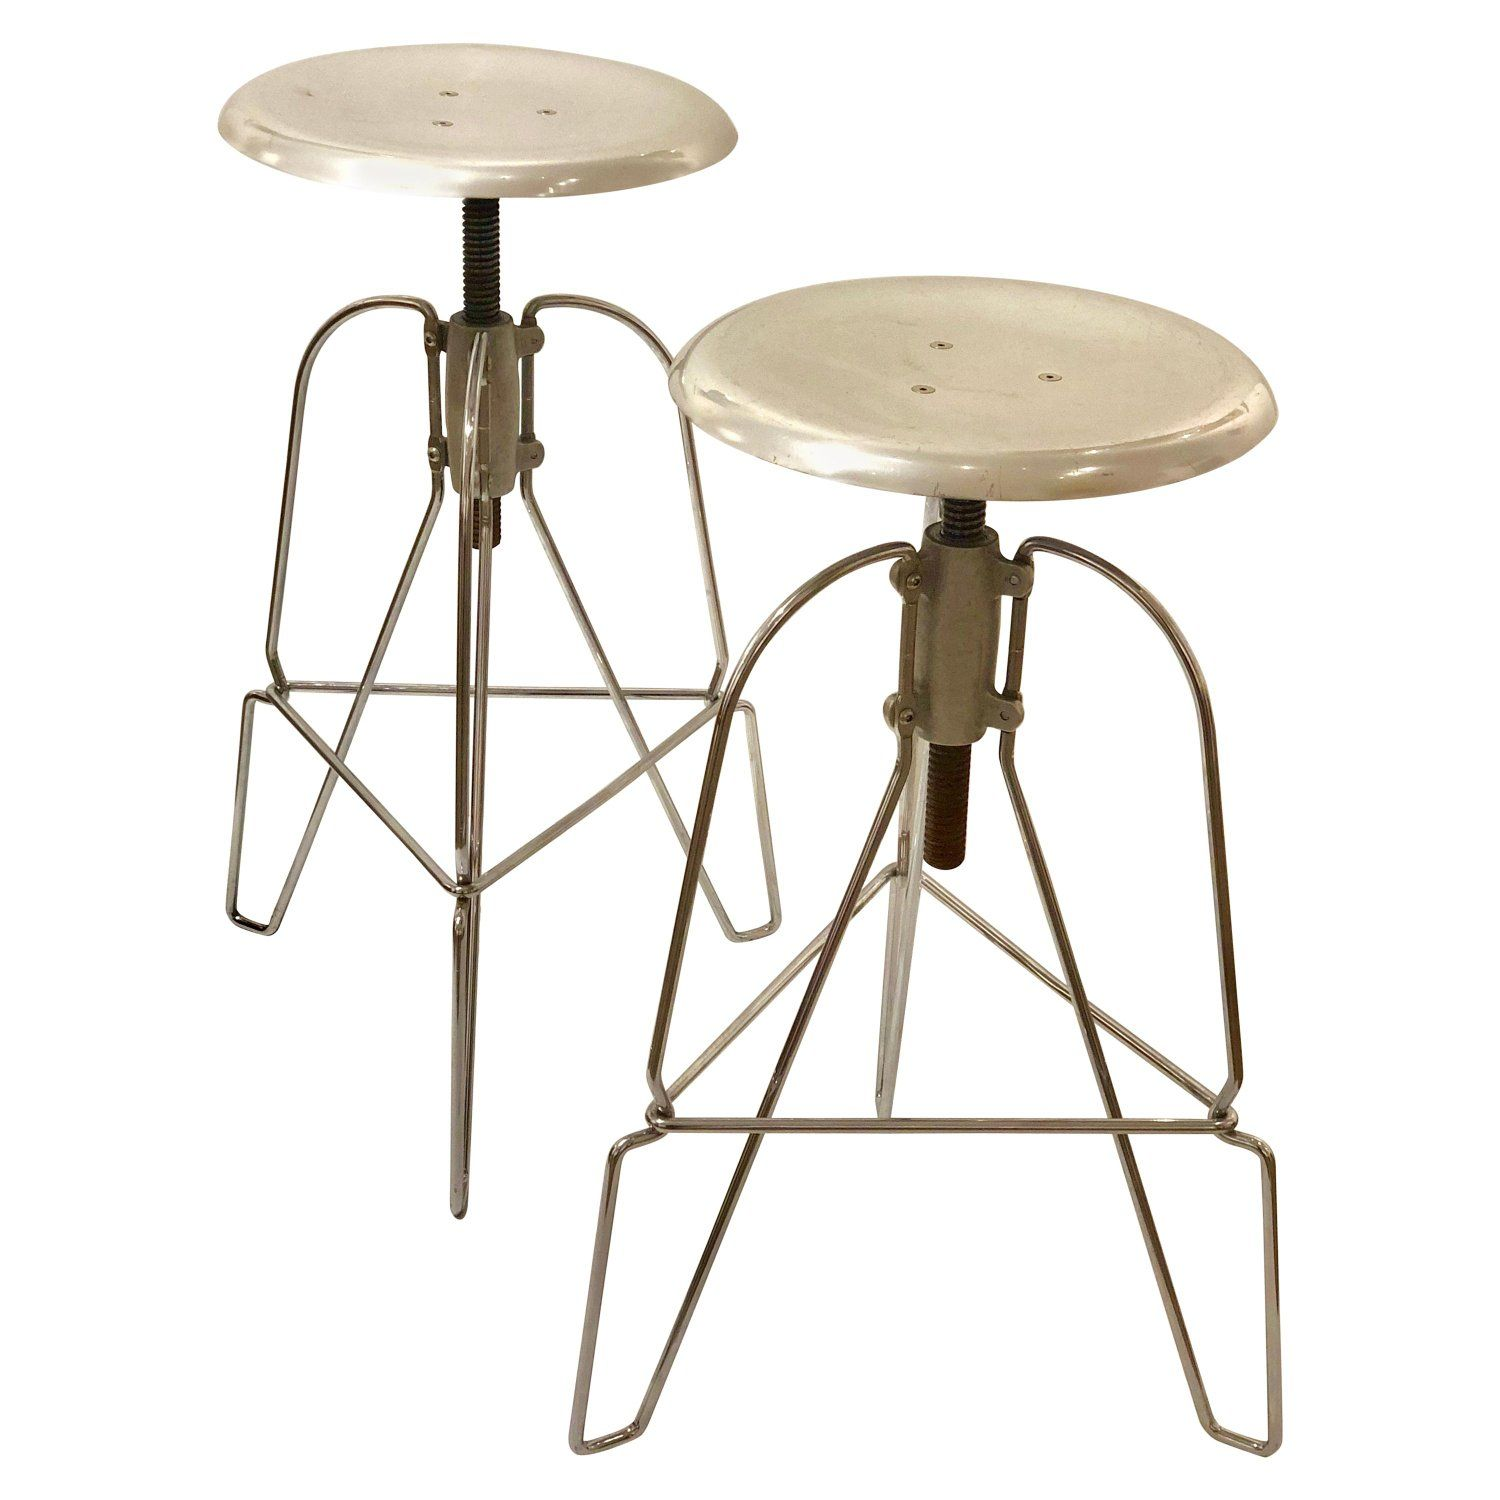 Pair Of Jeff Covey Stools With Swivel Tops For Herman Miller Stool Swivel Seating Swivel